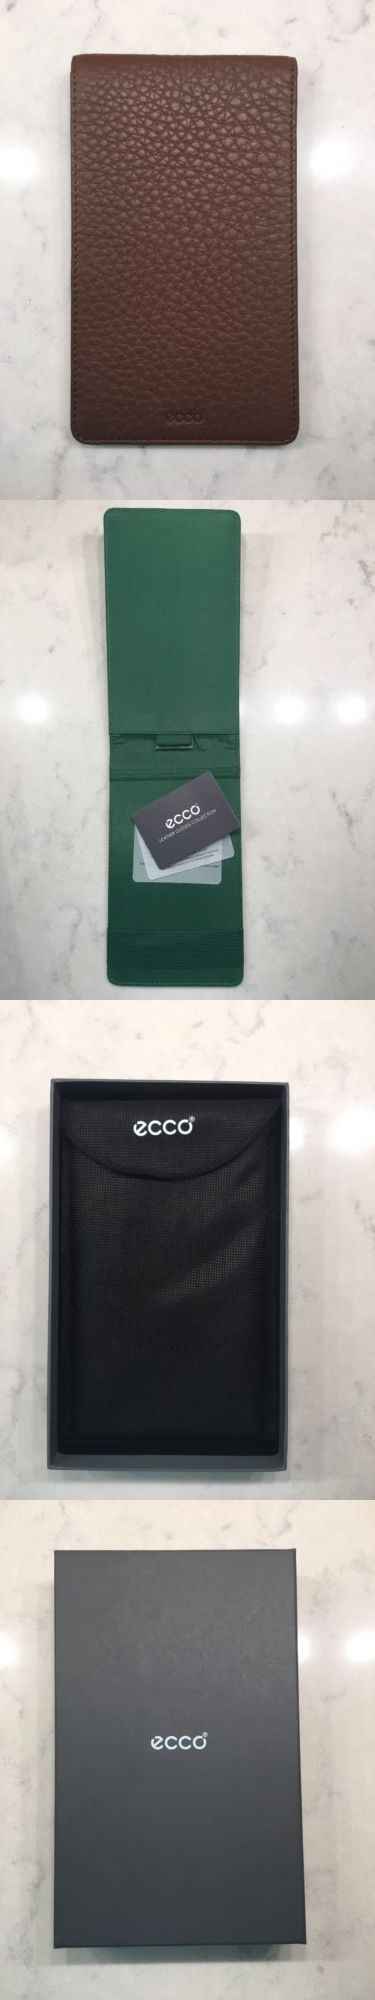 Scorecards and Holders 90865: Ecco Leather Haikou Golf Scorecard Brown Oil Bark Score Card -> BUY IT NOW ONLY: $49.99 on eBay!